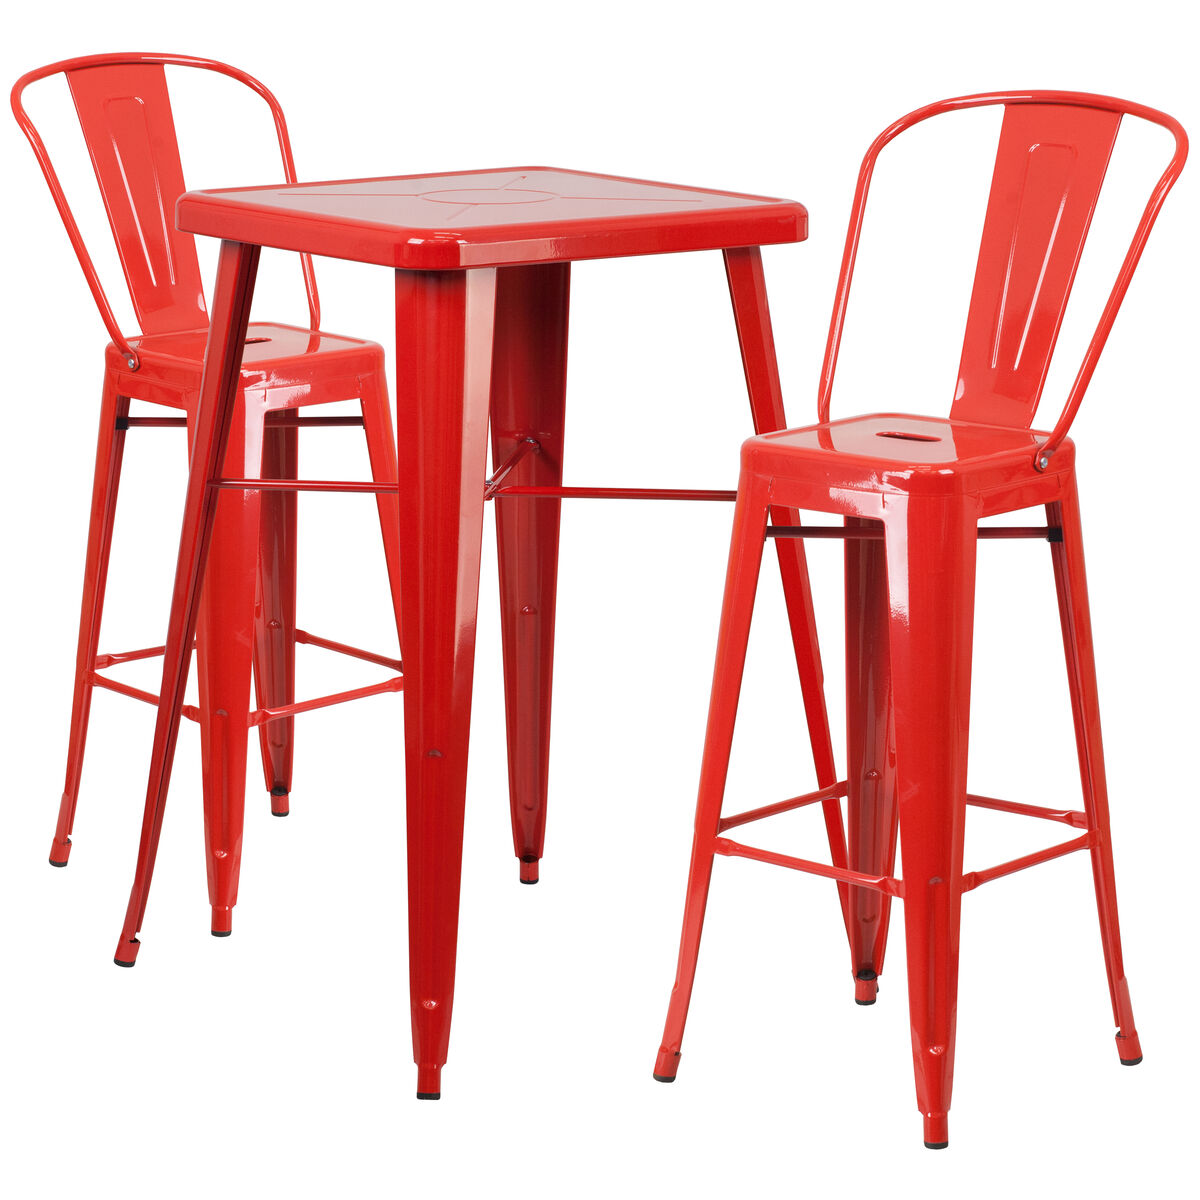 Our 23 75 Square Red Metal Indoor Outdoor Bar Table Set With 2 Stools